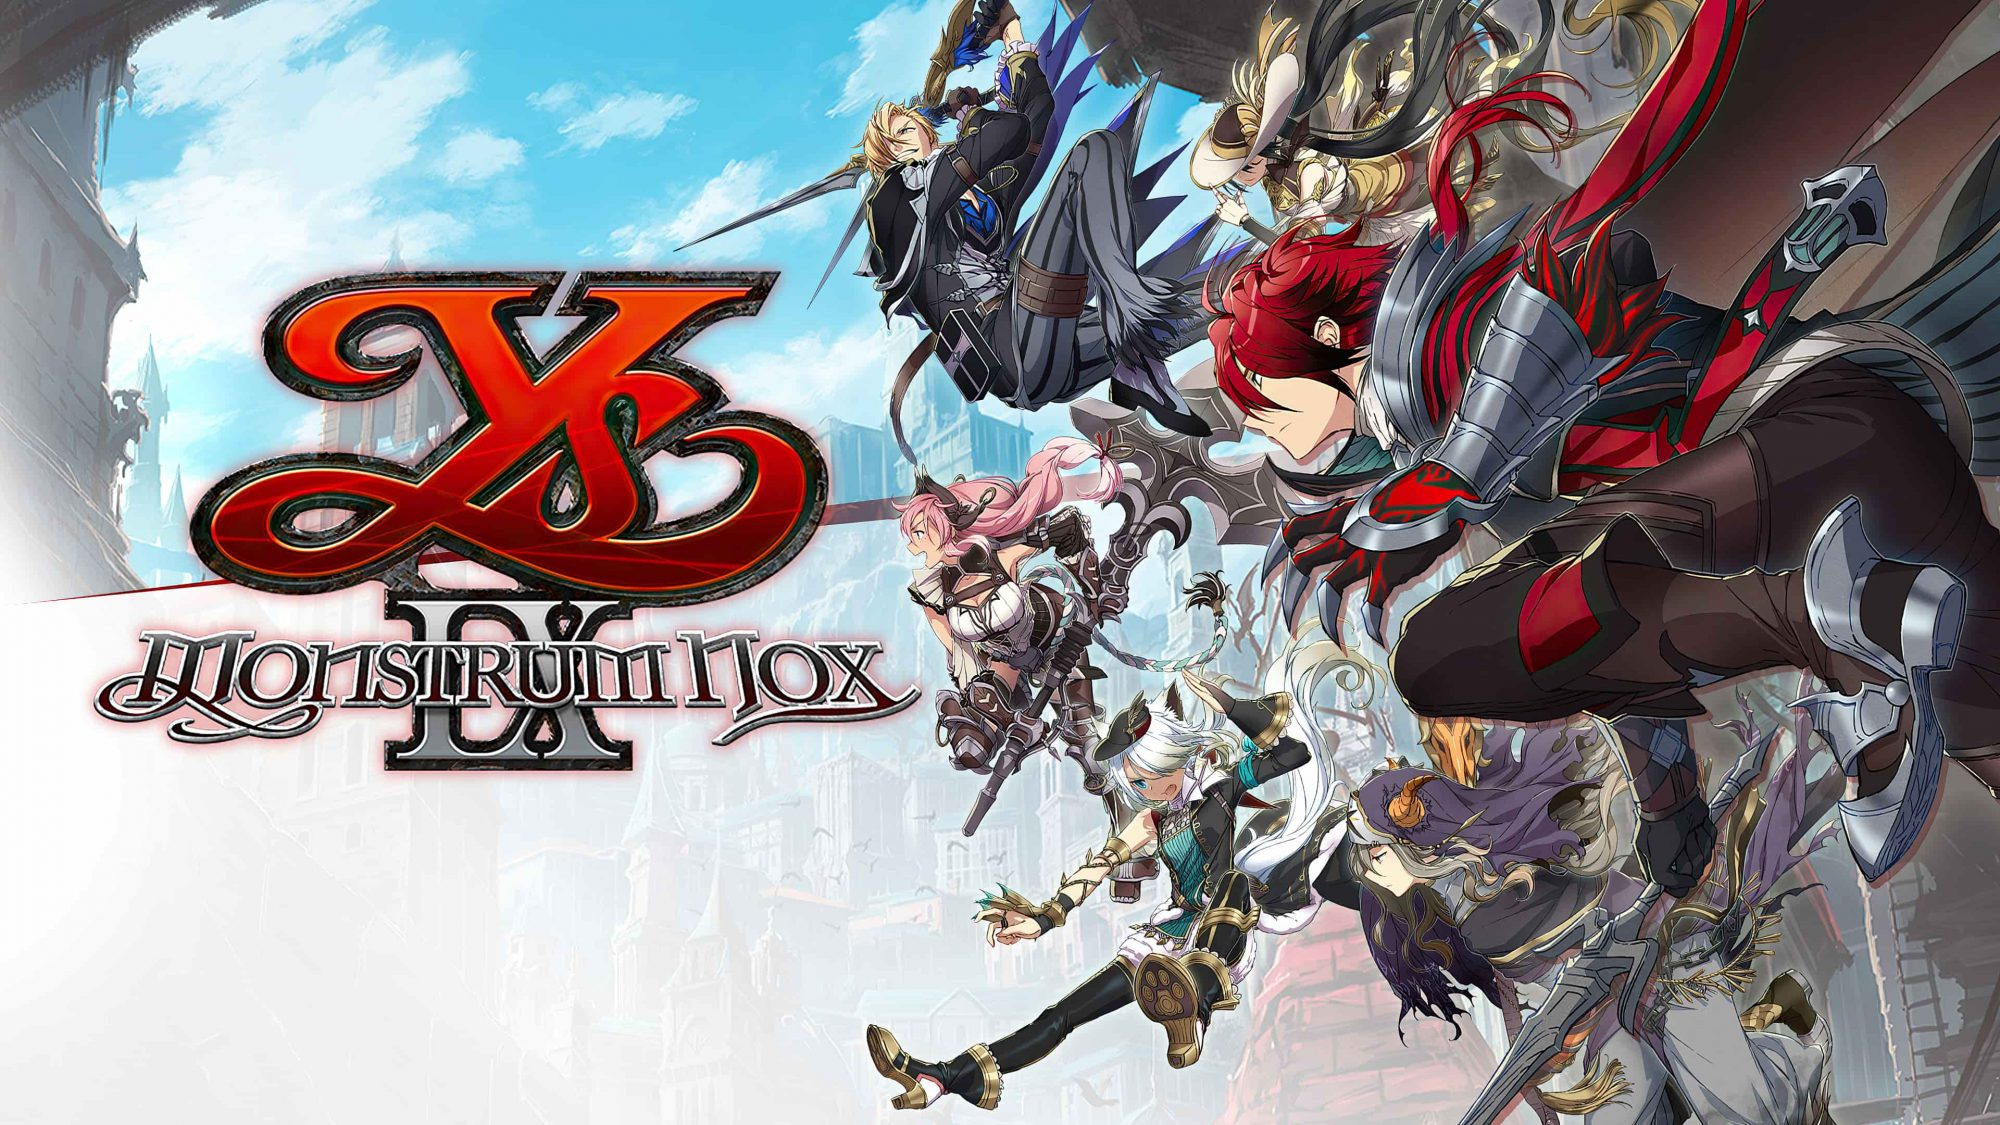 Ys IX: Monstrum Nox is now available on Stadia with excellent action RPG combat